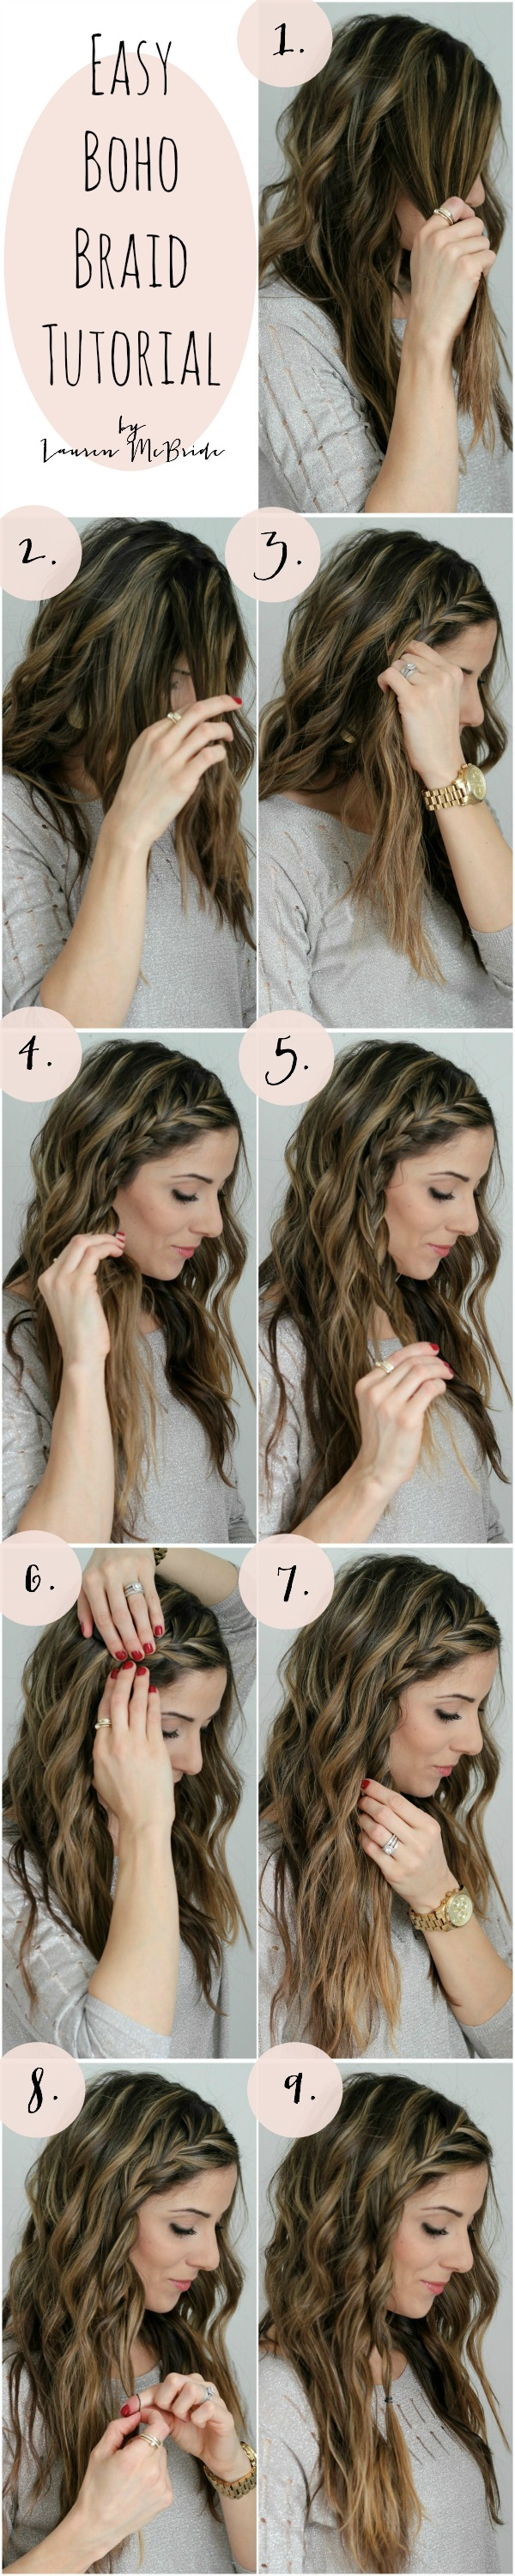 Easy Boho Braid Tutorial